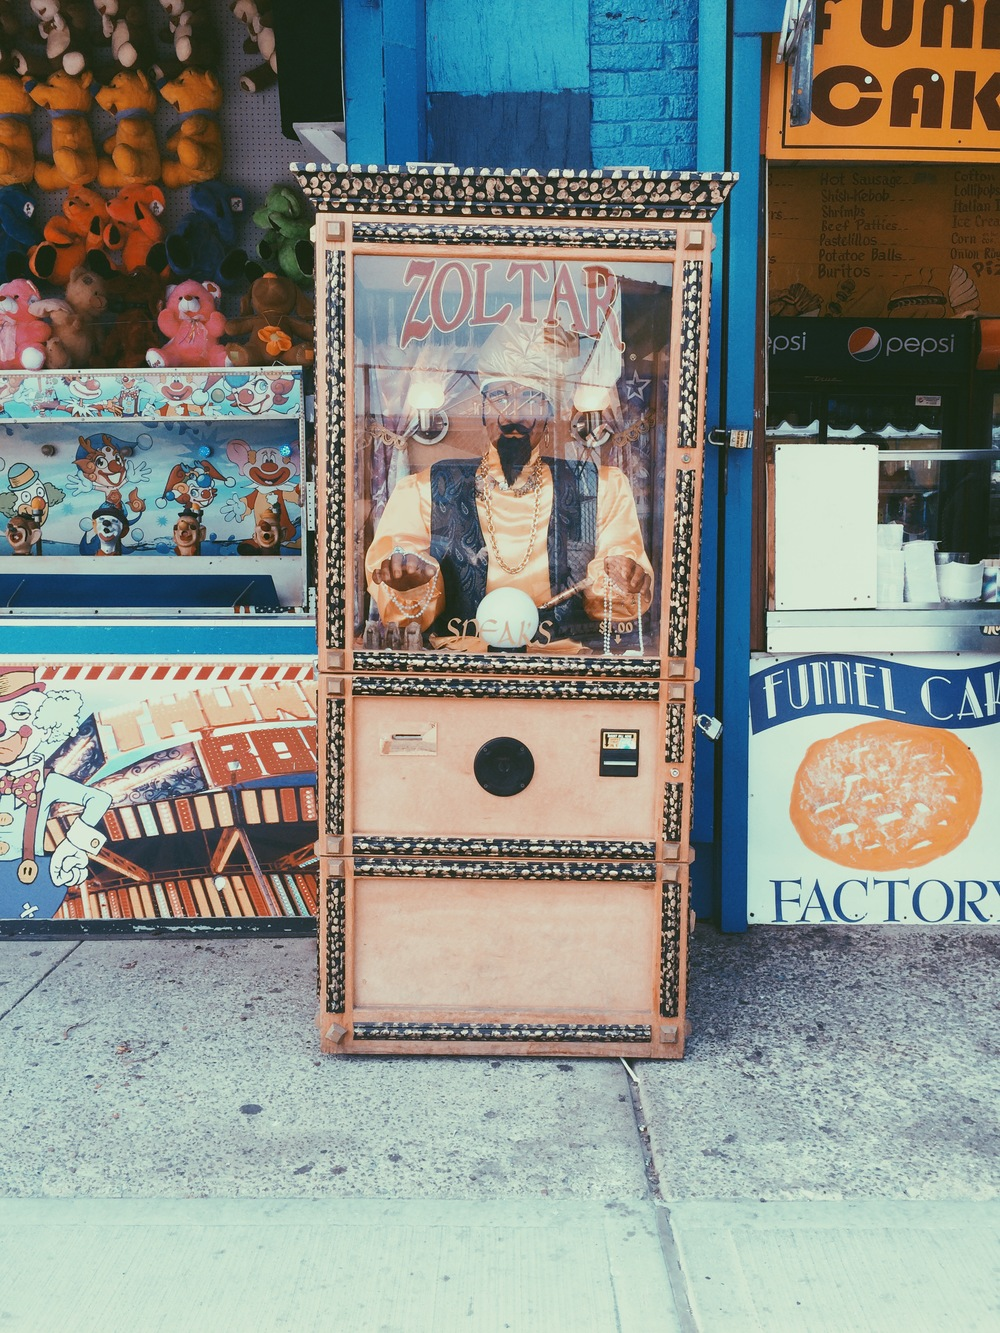 I can't pass up an opportunity to have my fortune told by the MightyZoltar.